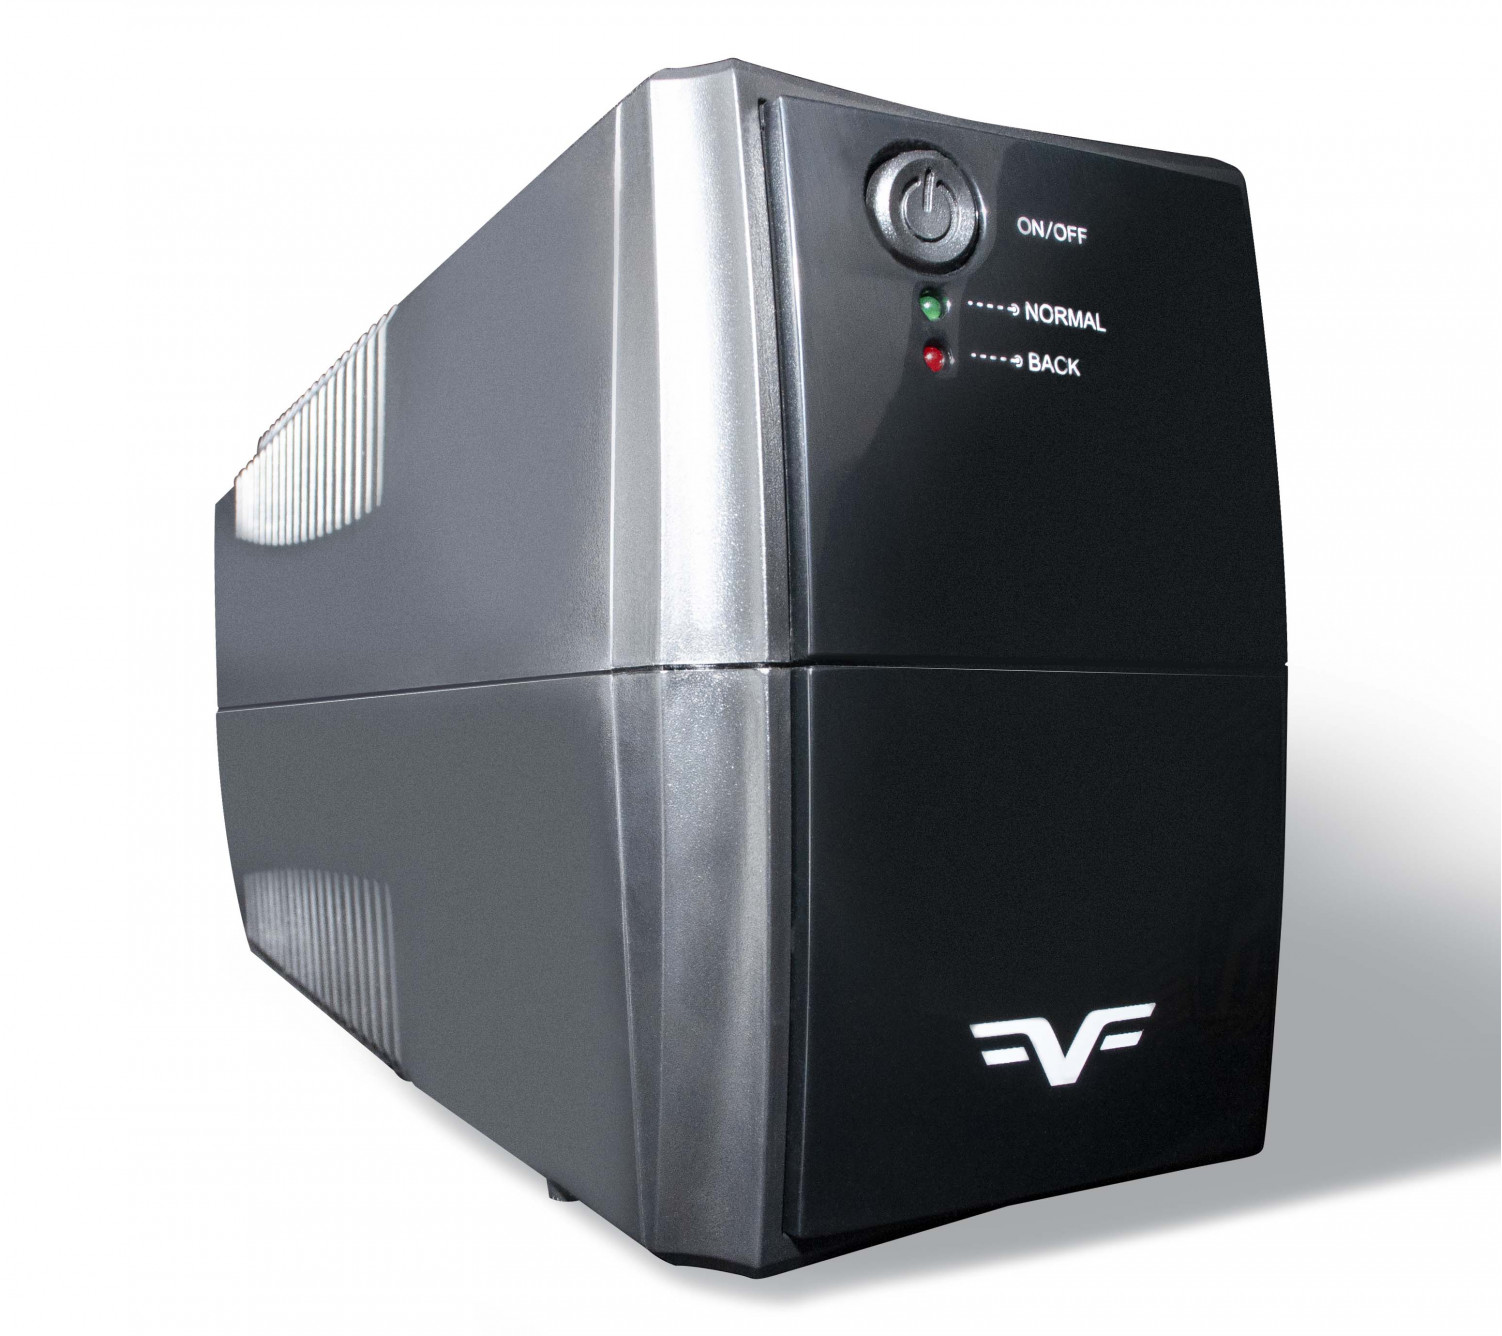 ИБП Frime Office 600VA